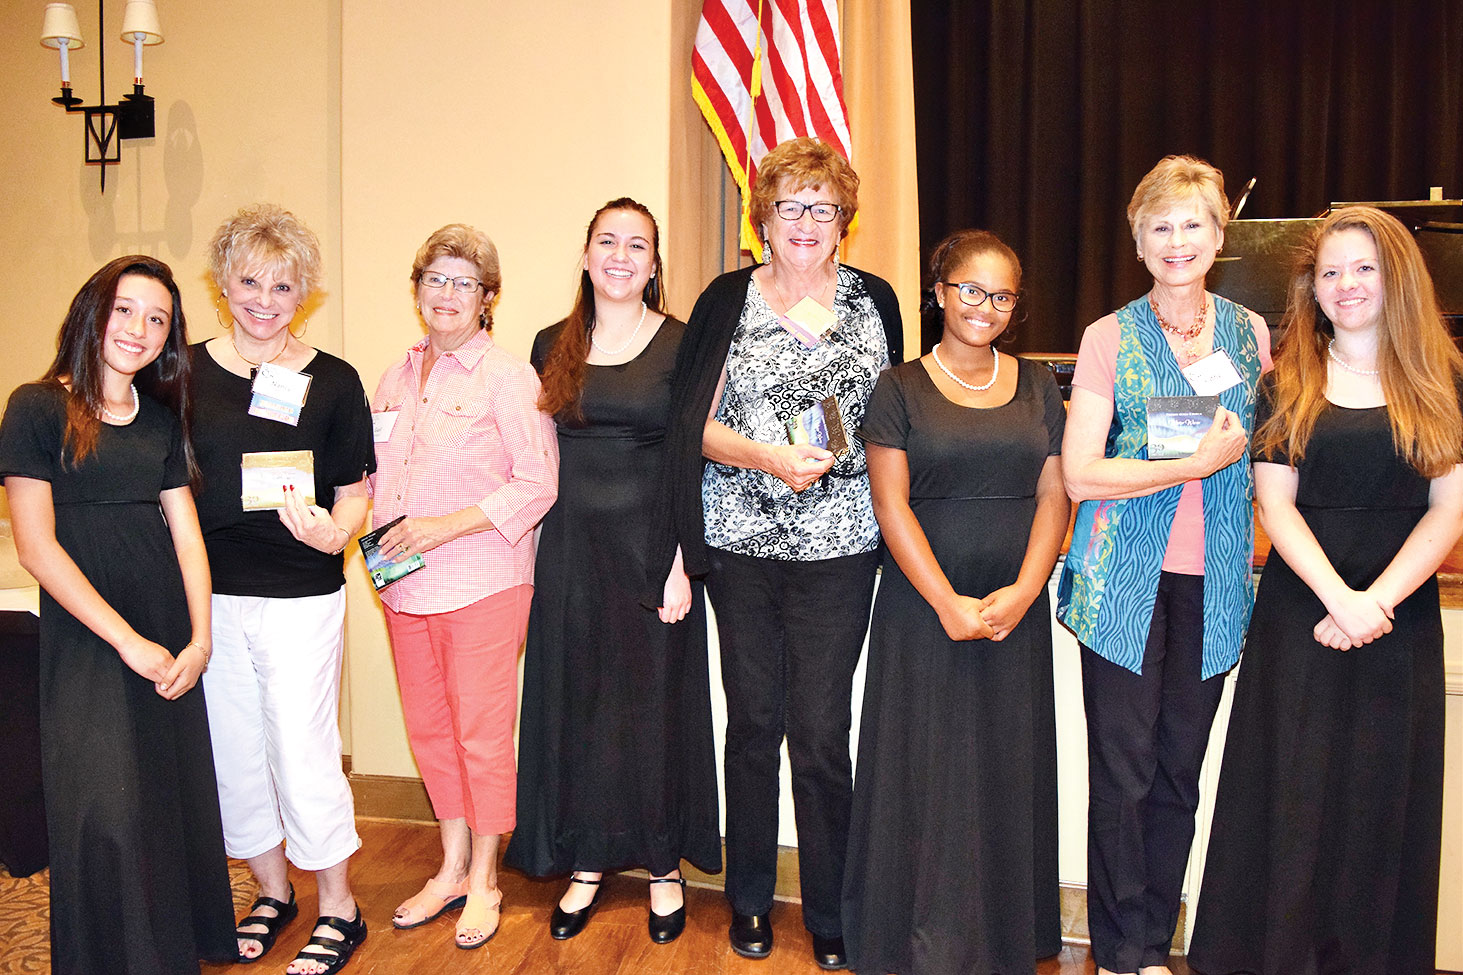 Members of the choir presented door prizes to lucky members of TWOQC.